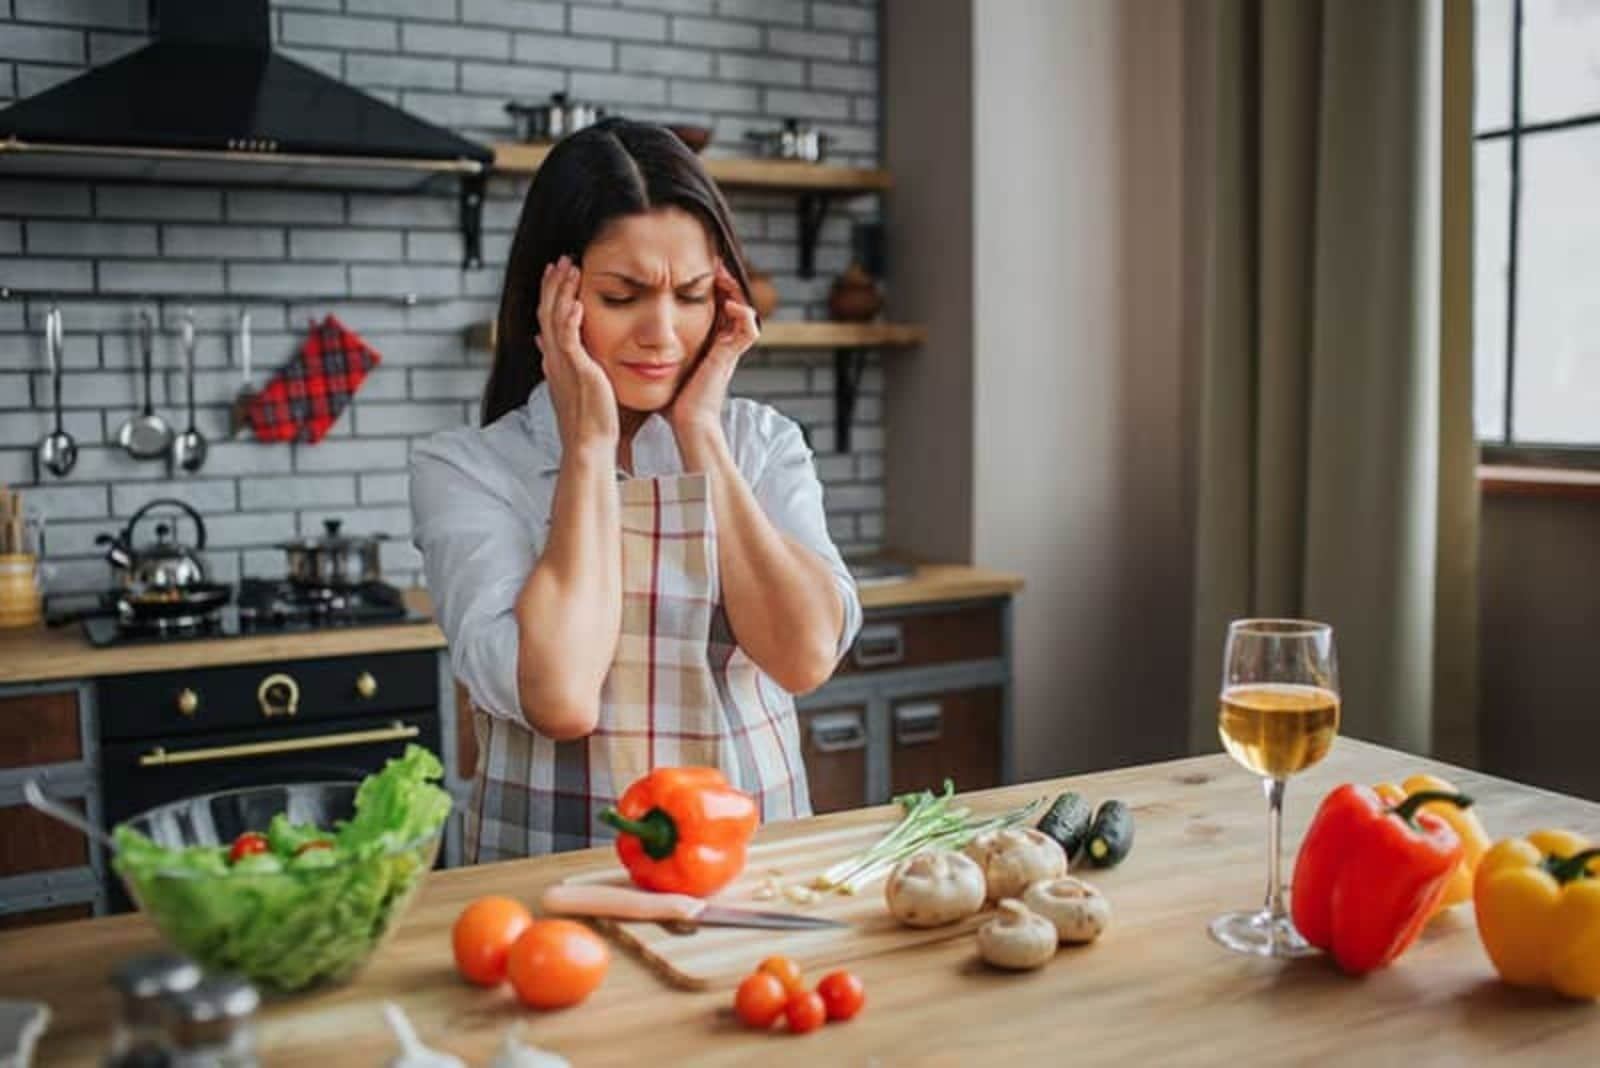 a confused woman stands in the kitchen